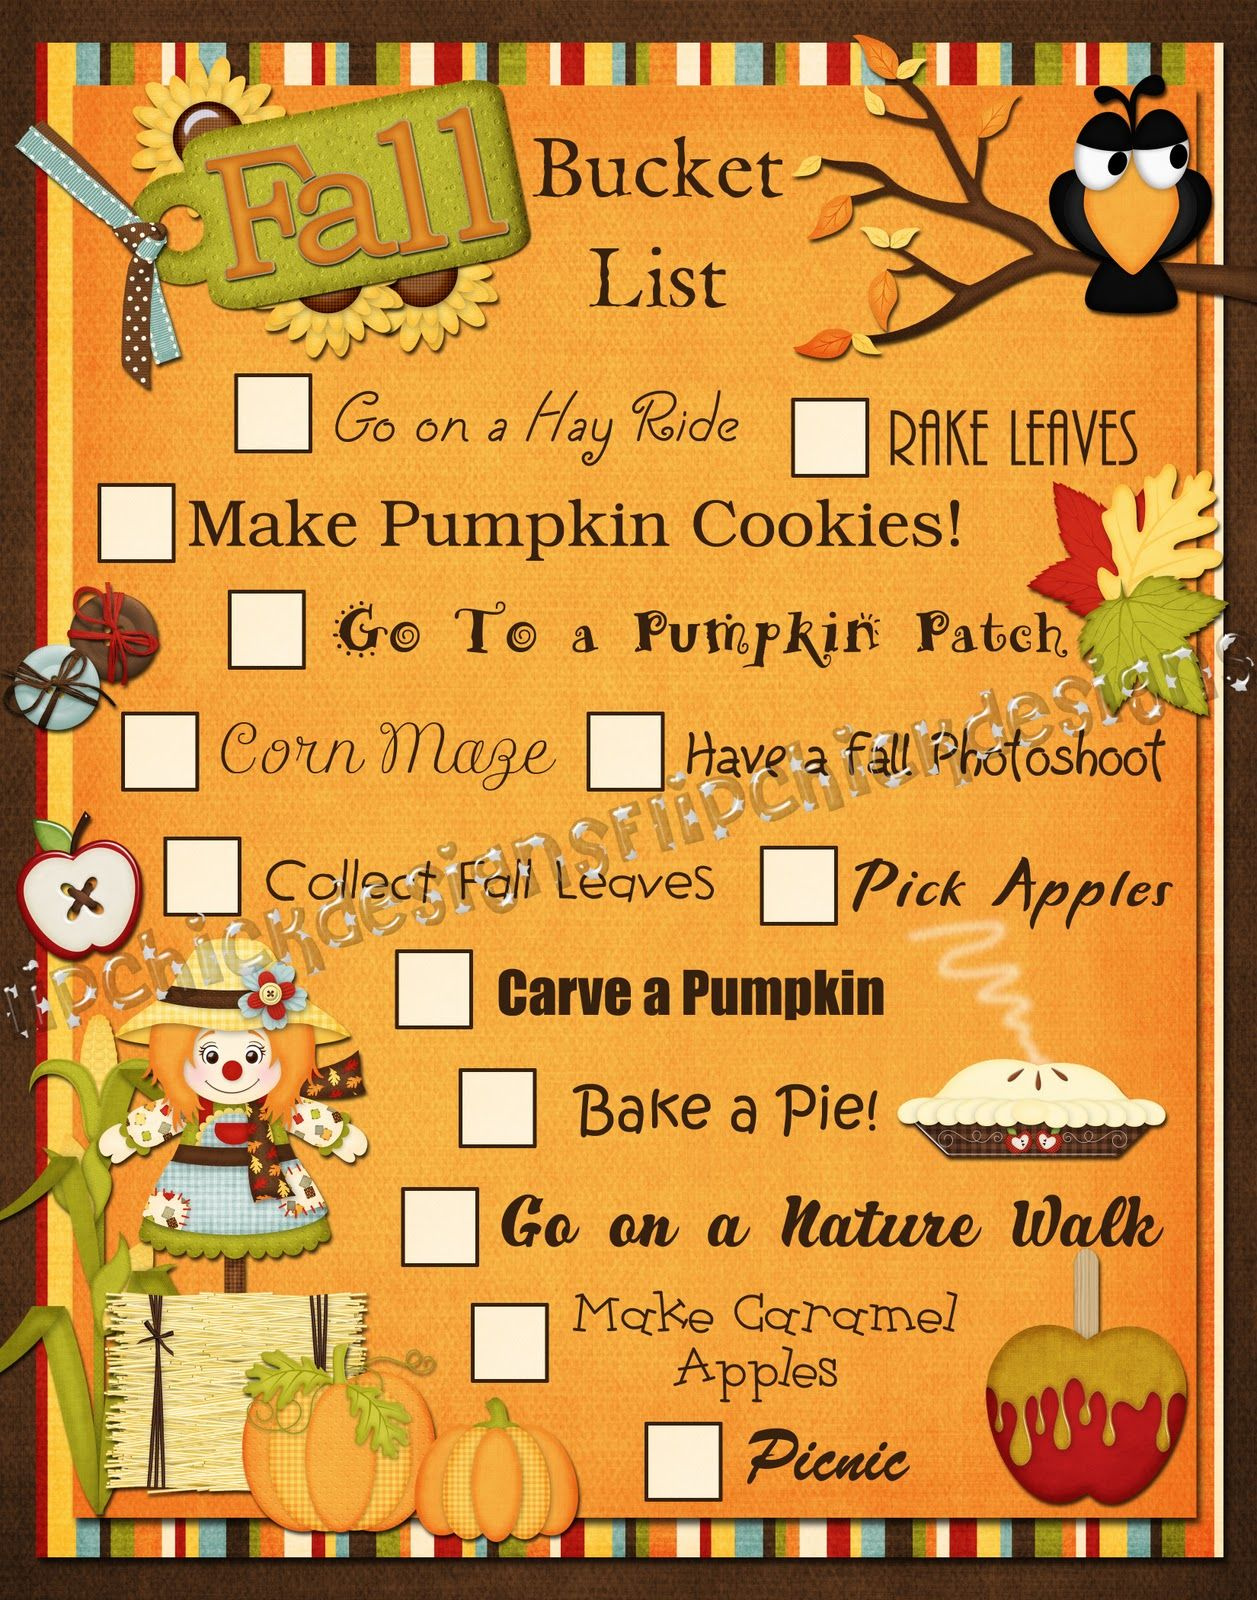 Fall Bucket List We Can Do All Of This In Central Texas